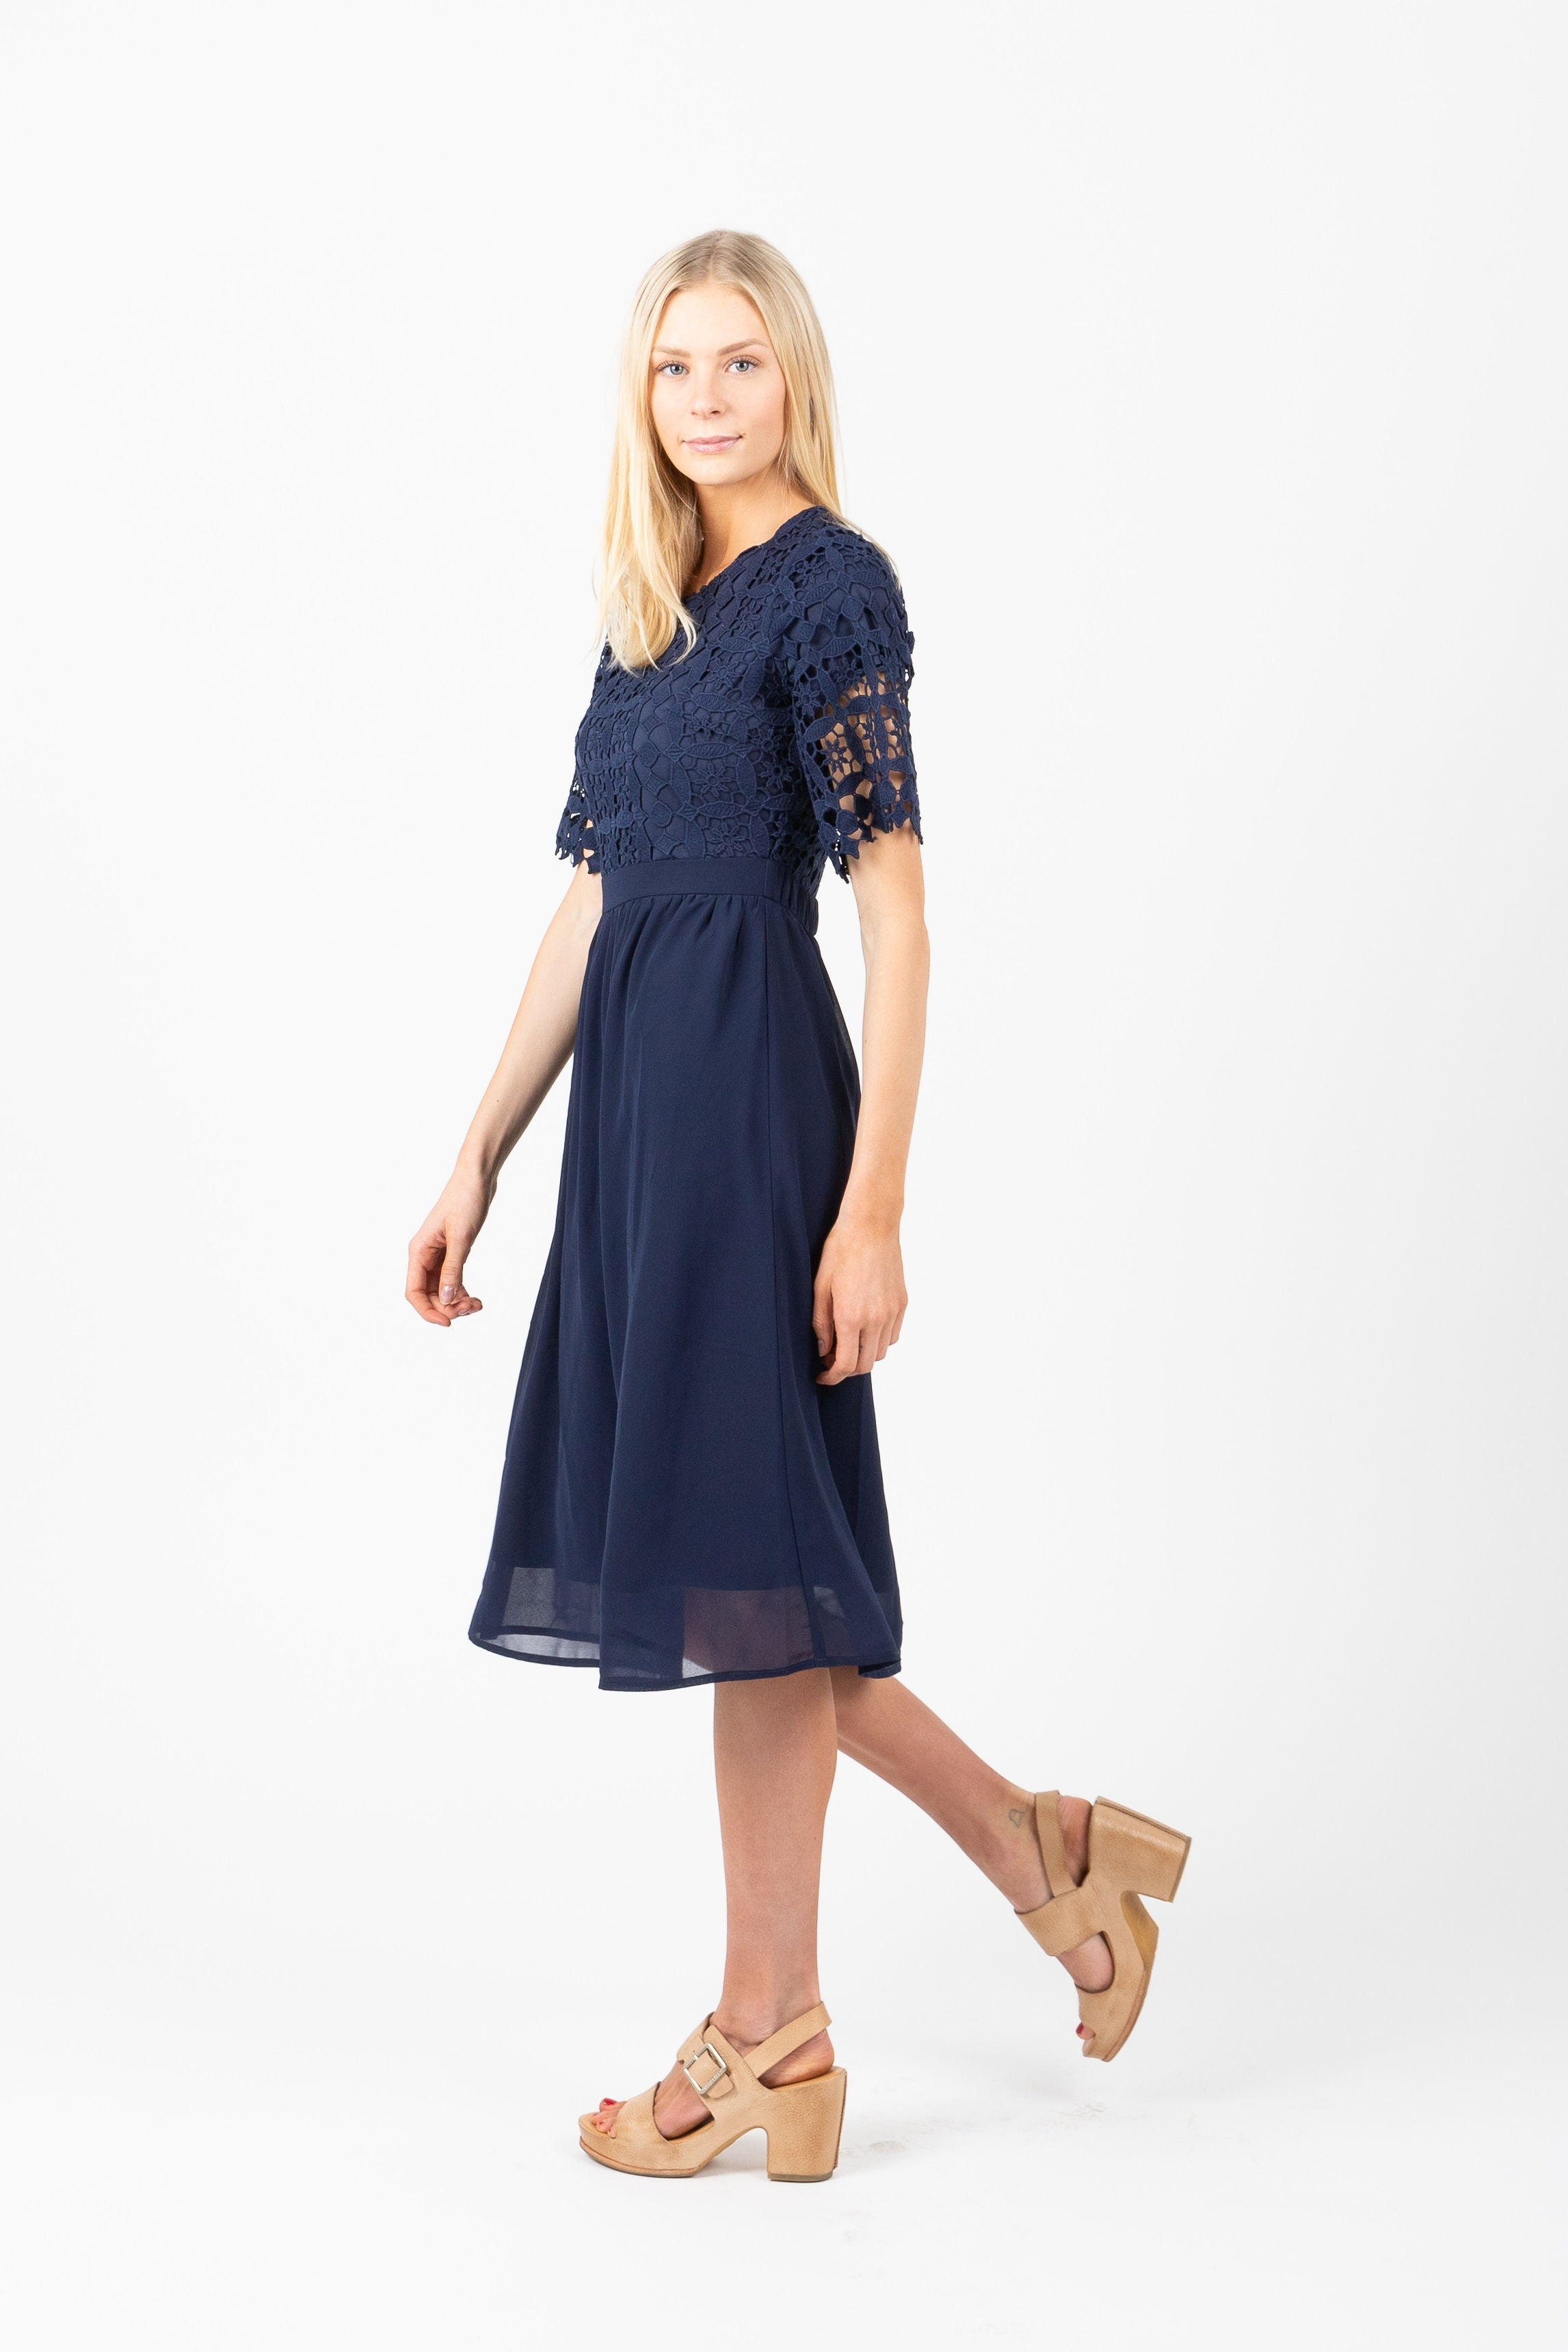 The Nashua Lace Top Dress in Navy